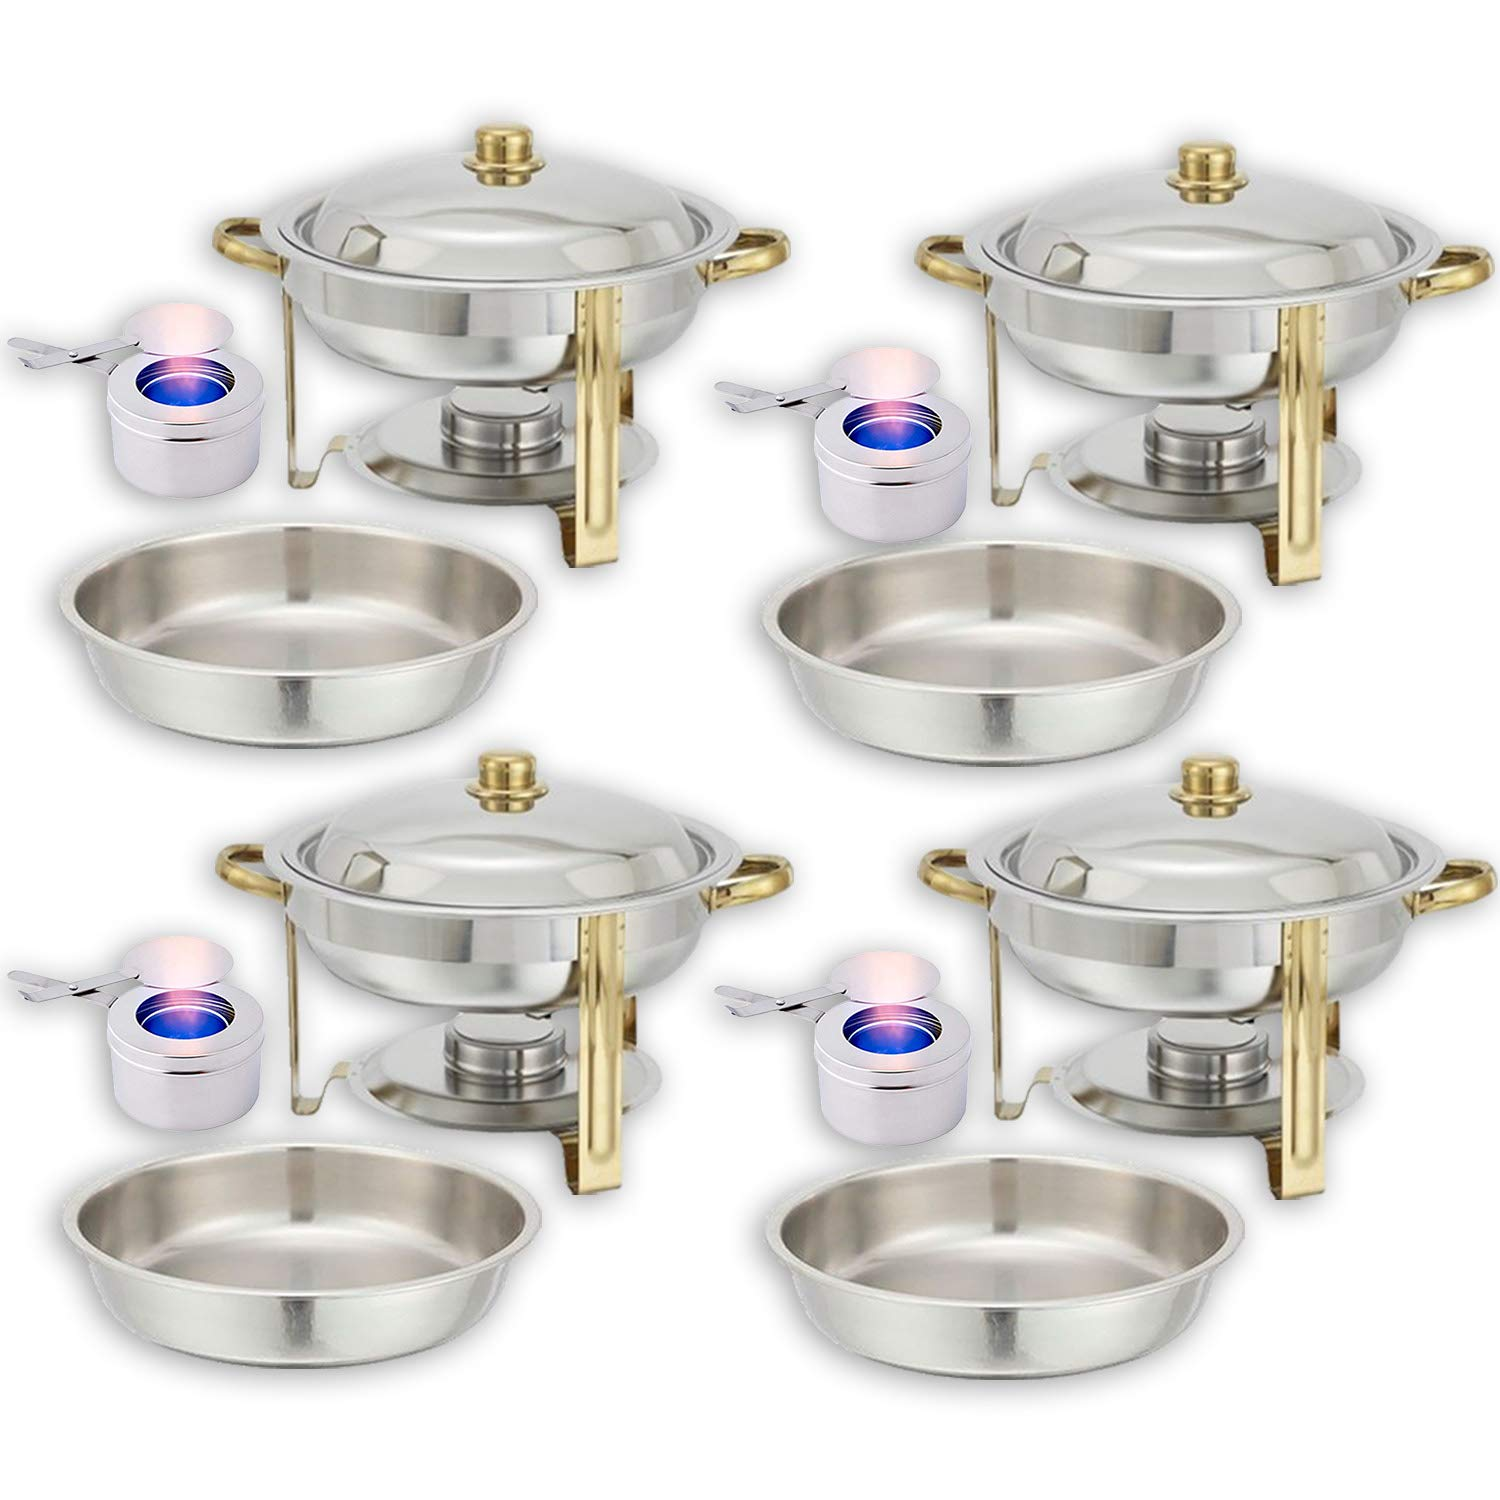 Round Chafing Dish Buffet Set — Water Pan + Food Pan (4 qt) + Frame + Fuel Holders - Stainless-Steel Warmer Kit 4 Pack